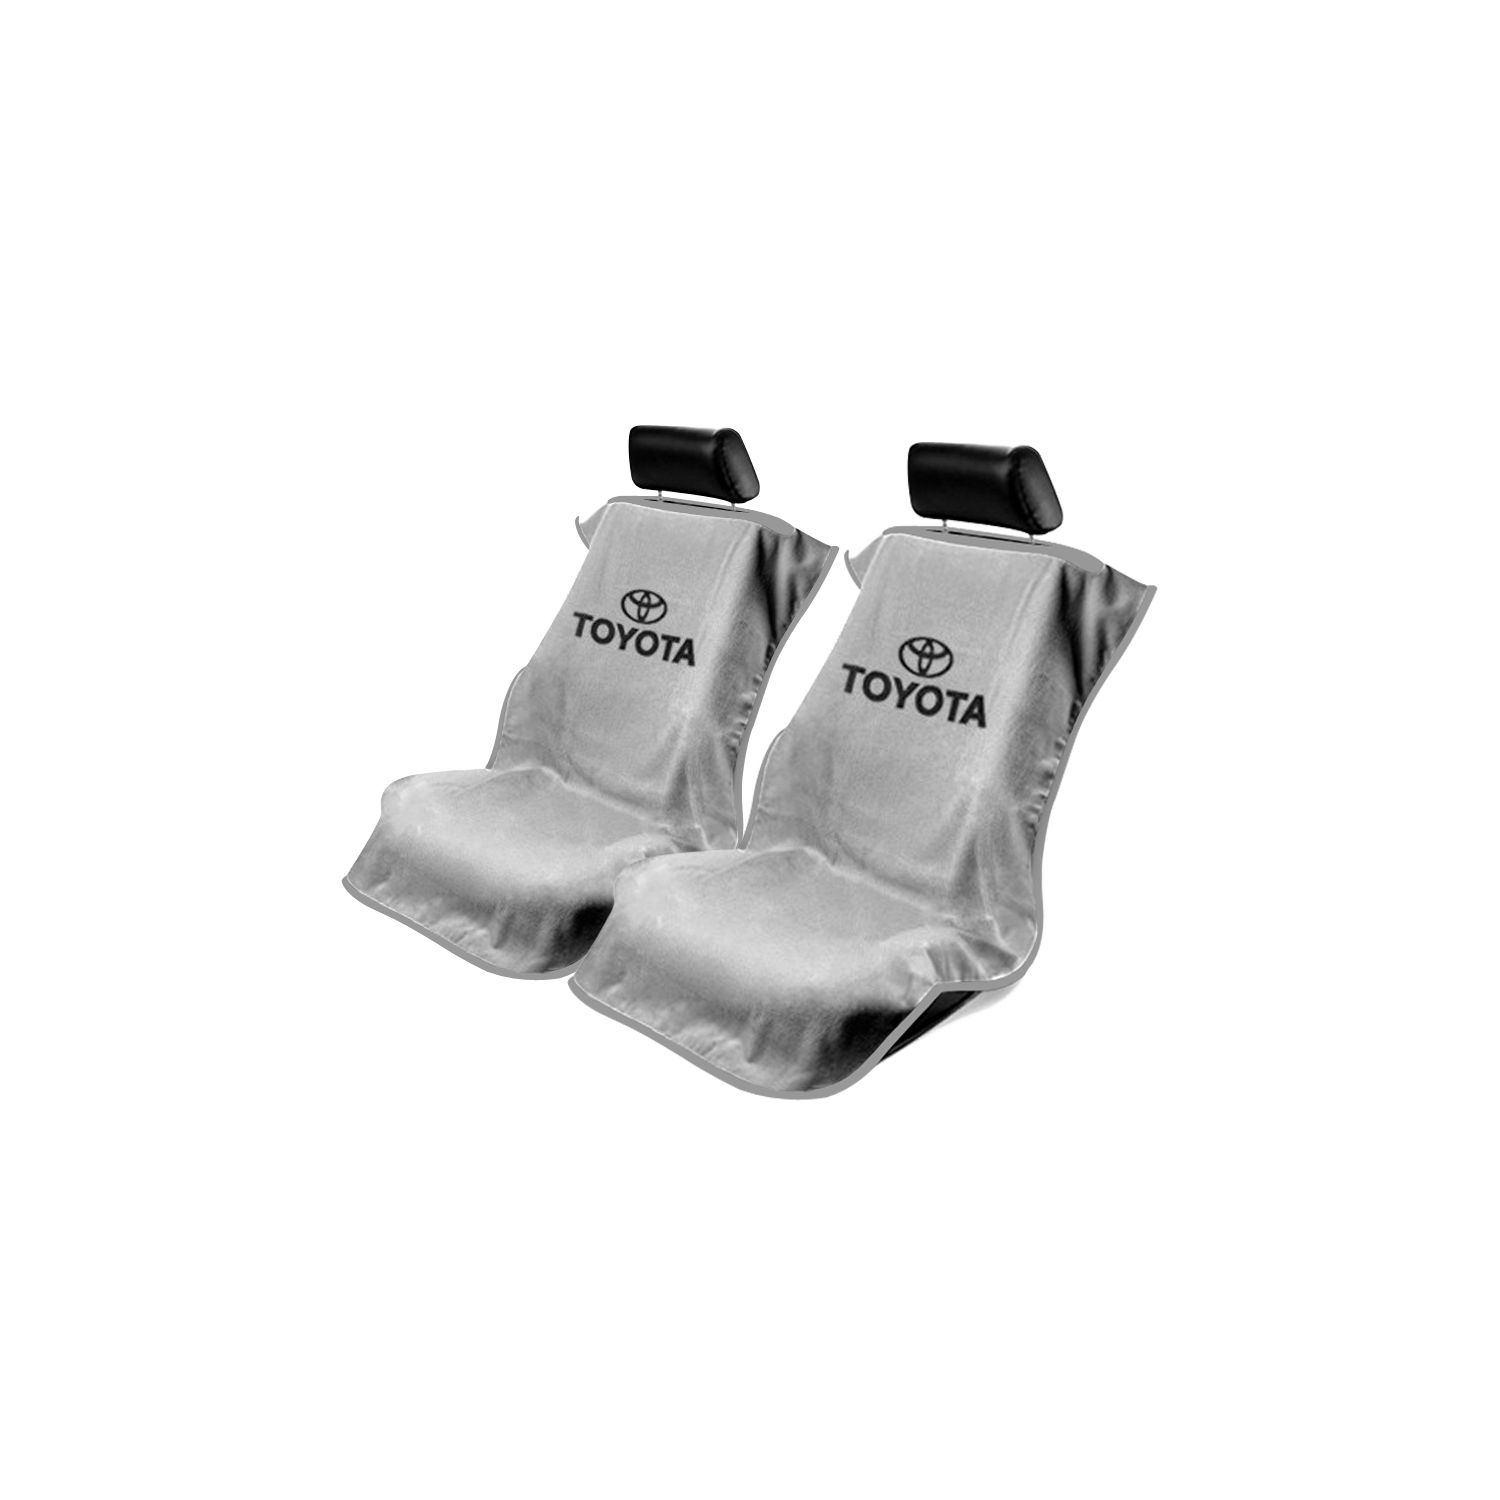 Astonishing Seat Armour Pair Of Grey Towel Seat Covers With Toyota Logo Sa100Toyg Pabps2019 Chair Design Images Pabps2019Com